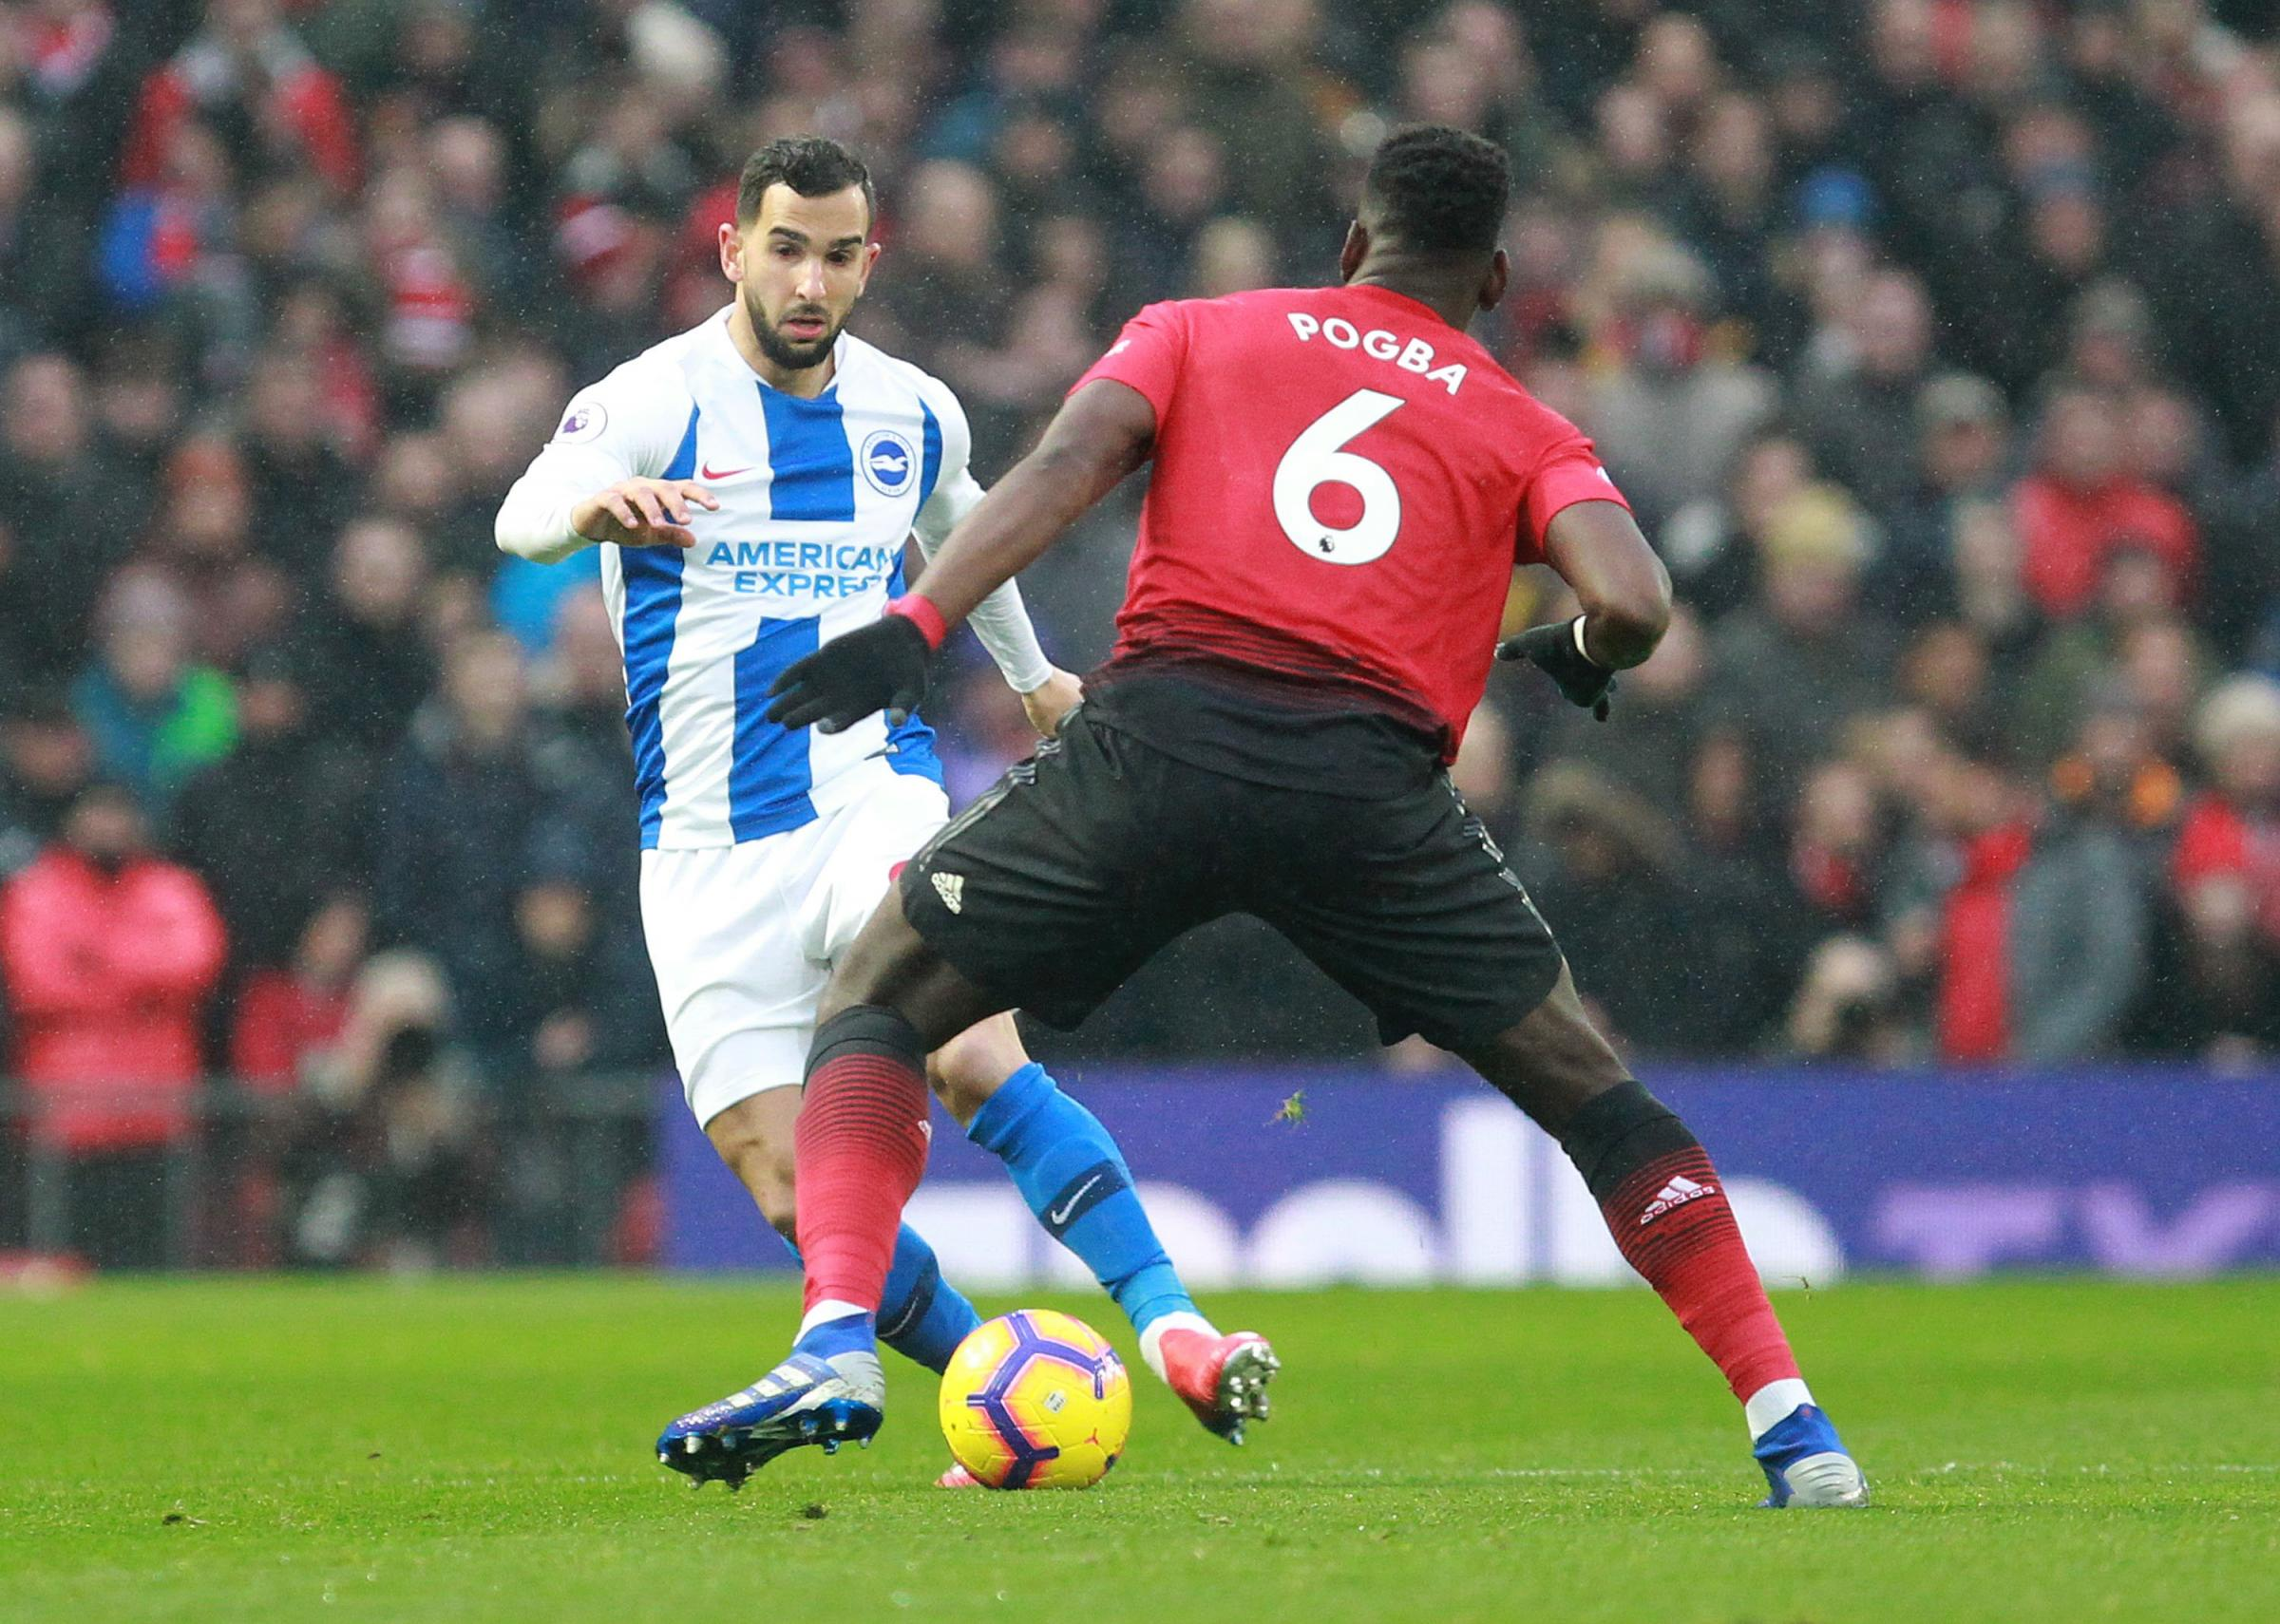 Montoya aims for return to Wembley